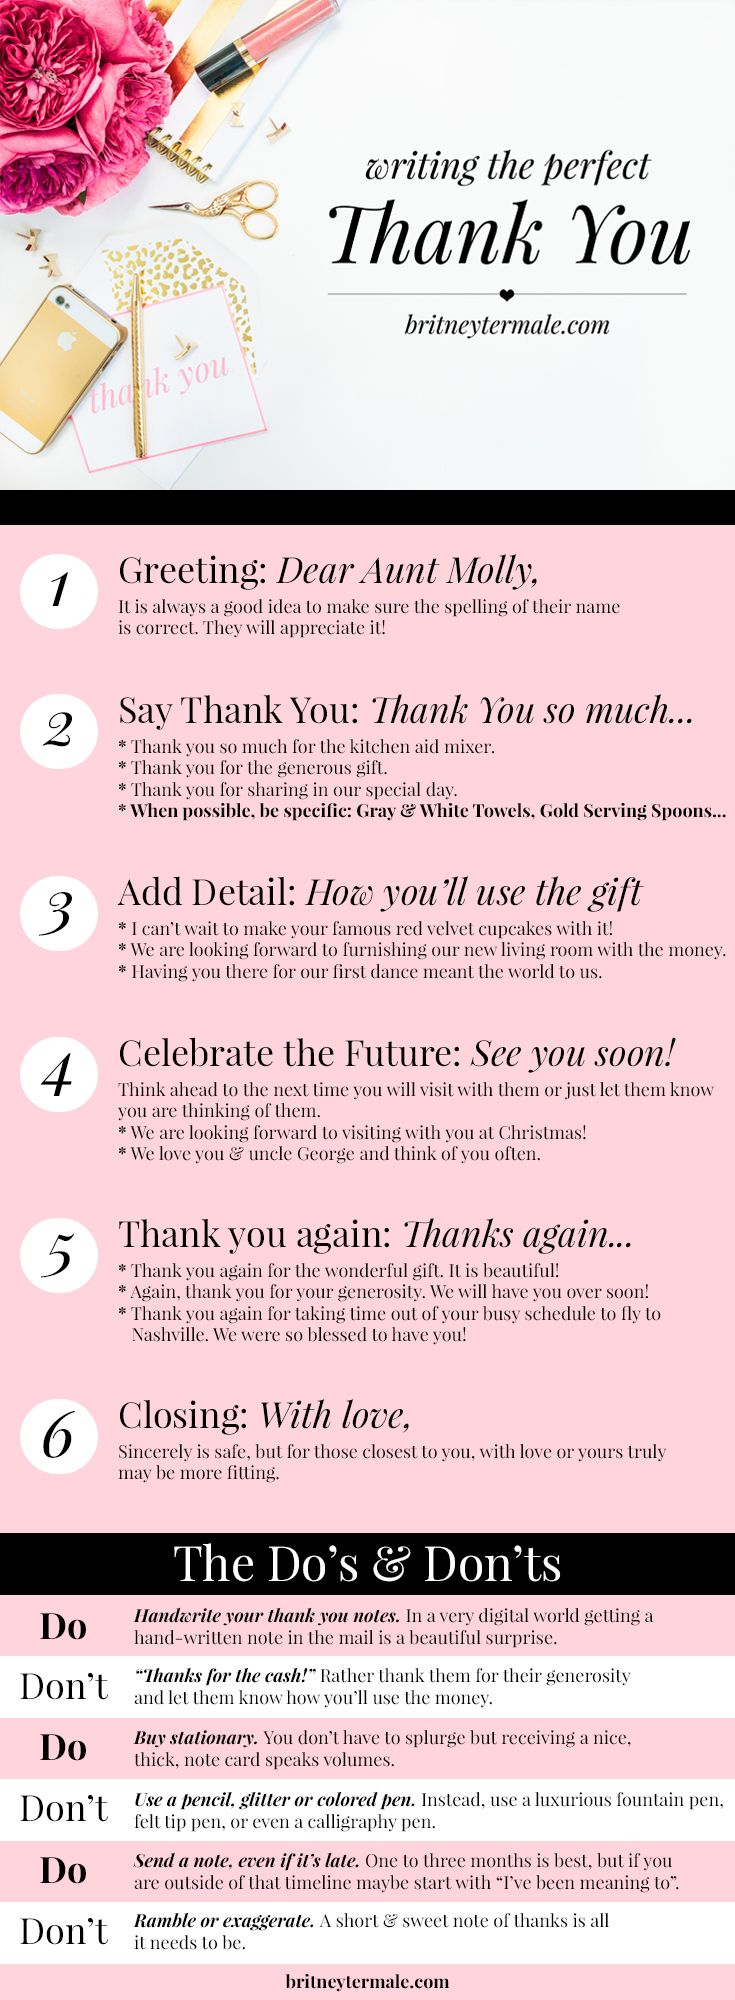 how to write a graduation thank you note By following these tips on how to write a graduation thank you note and topping it off with the perfect look, your greatest supporters will feel your sincerest appreciation for sharing in such a special day.